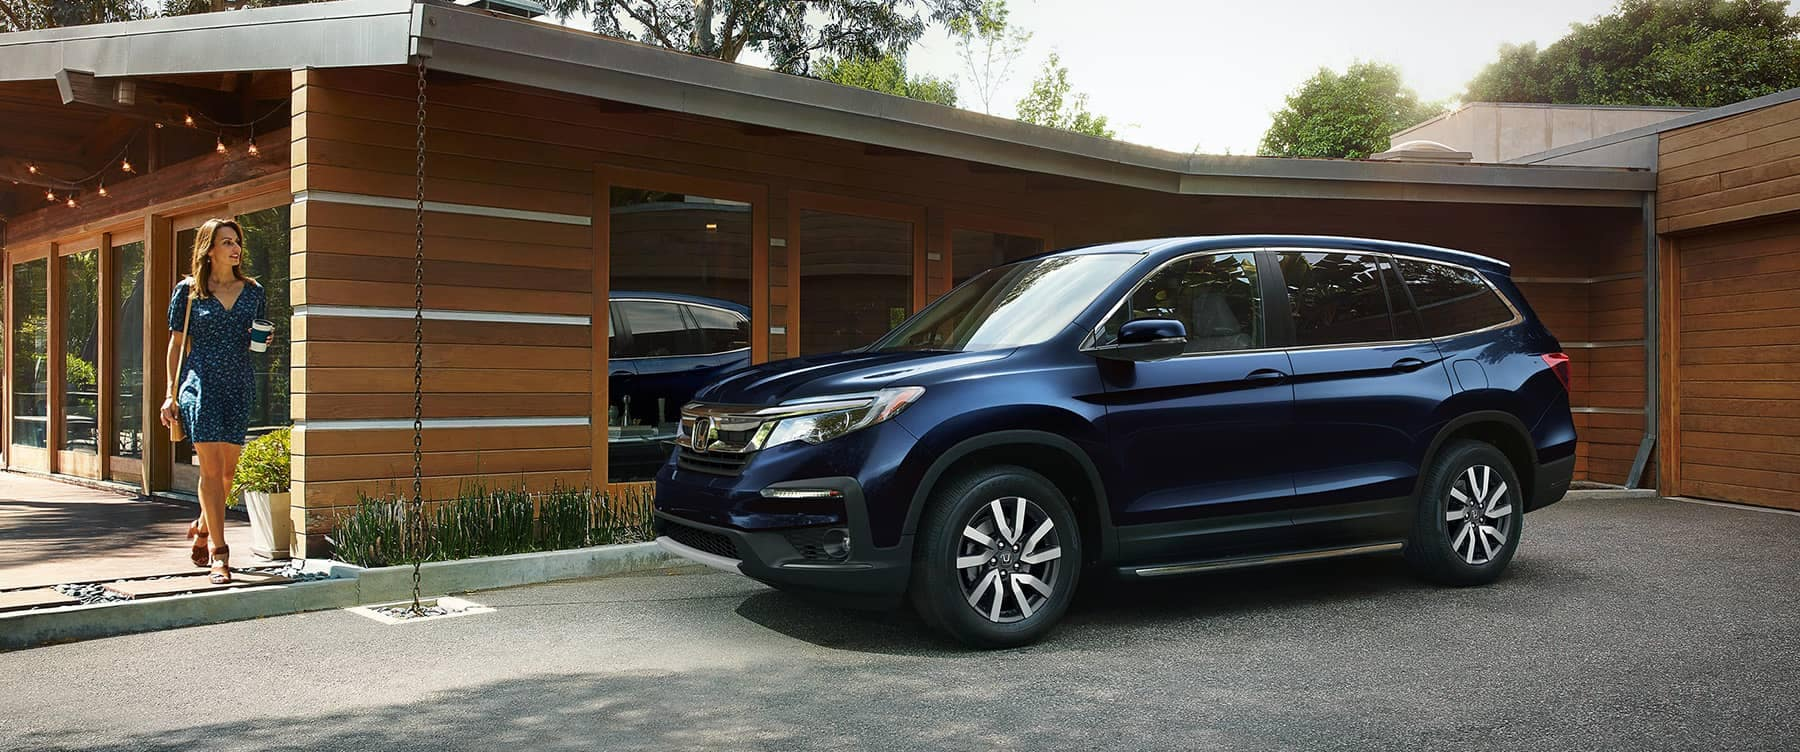 2019 Honda Pilot Parked in Front of Home